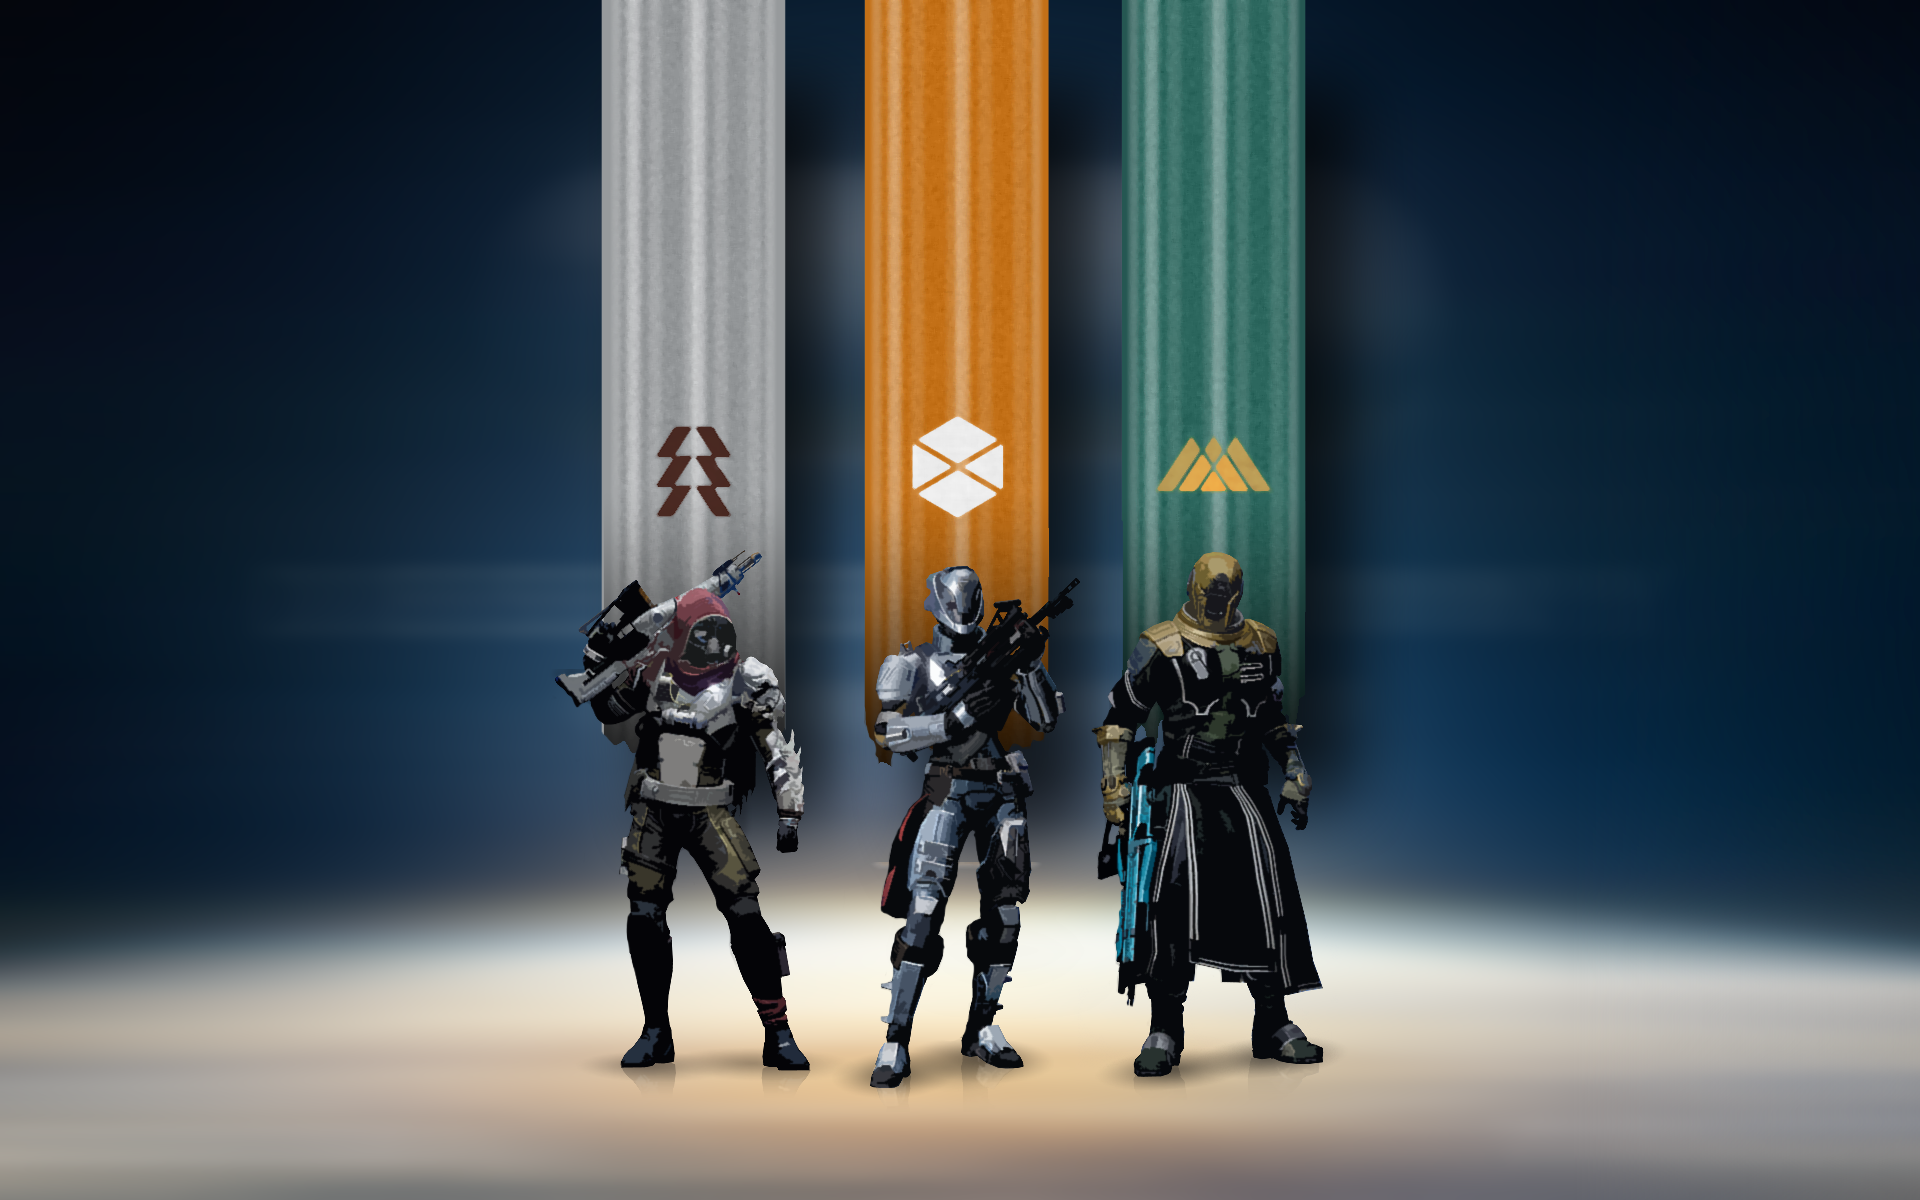 Awesome Destiny Wallpaper